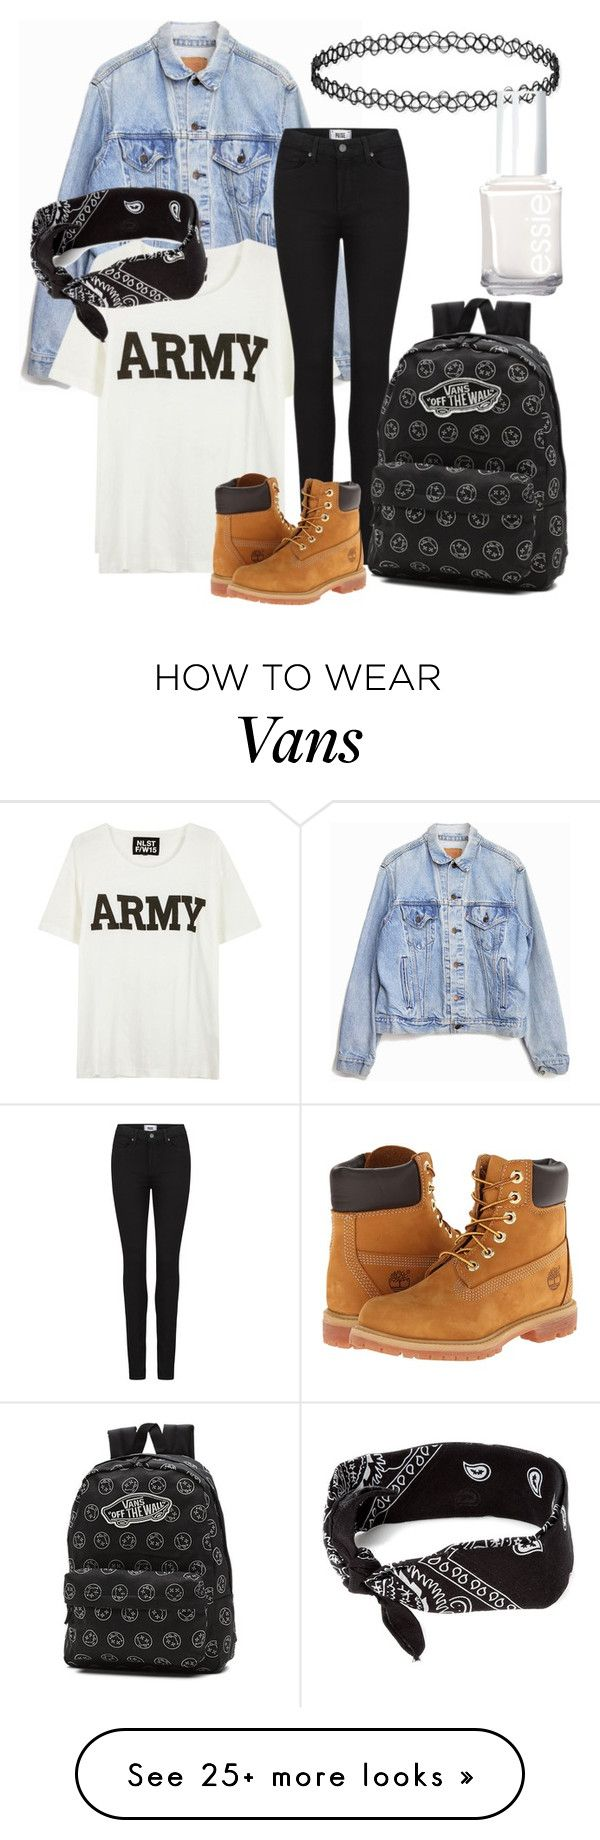 good look by vanessa150802 on Polyvore featuring NLST, Levis, Paige Denim, Timberland, Vans, claires and Essie